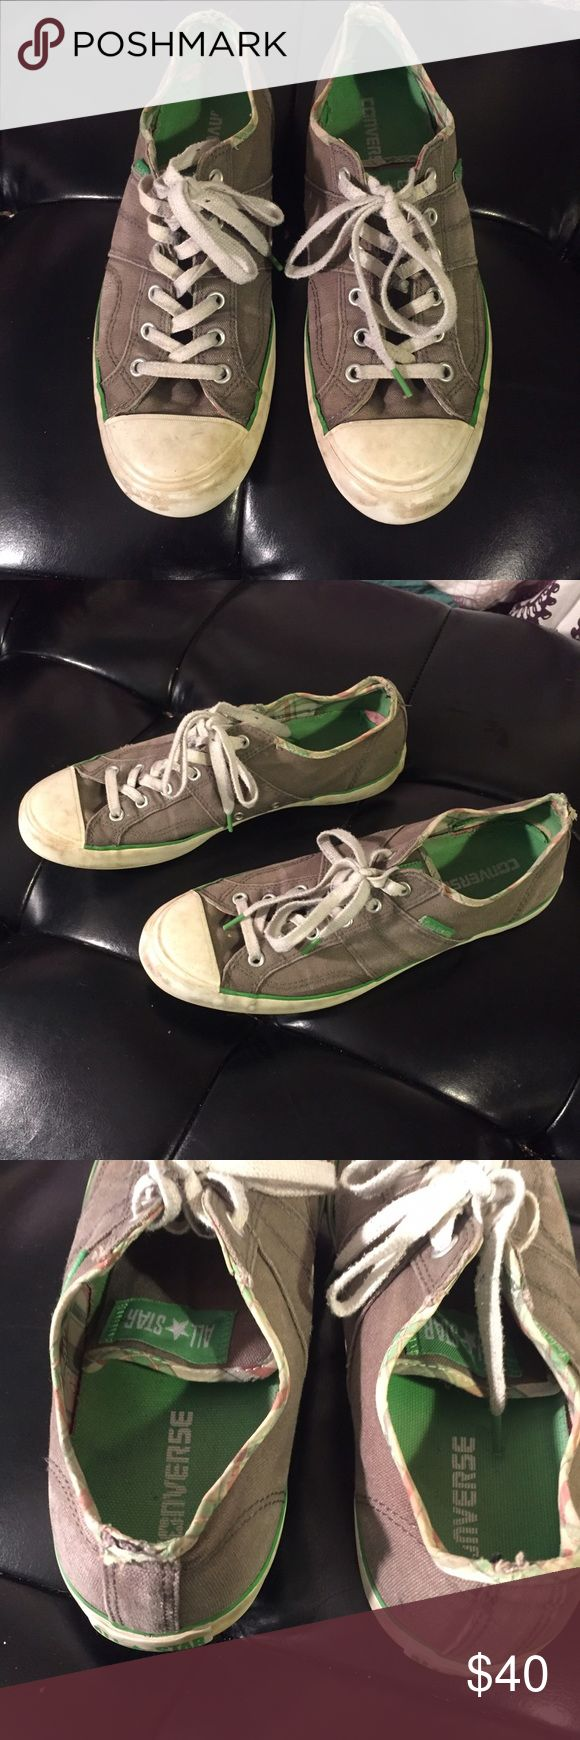 LADY ALLSTARS CONVERSE. Gray. Used but still looks great. Minimal discoloration on the white parts. Shoe laces have black stains not very visible. Green interior. Overall these still look great. Converse Shoes Sneakers